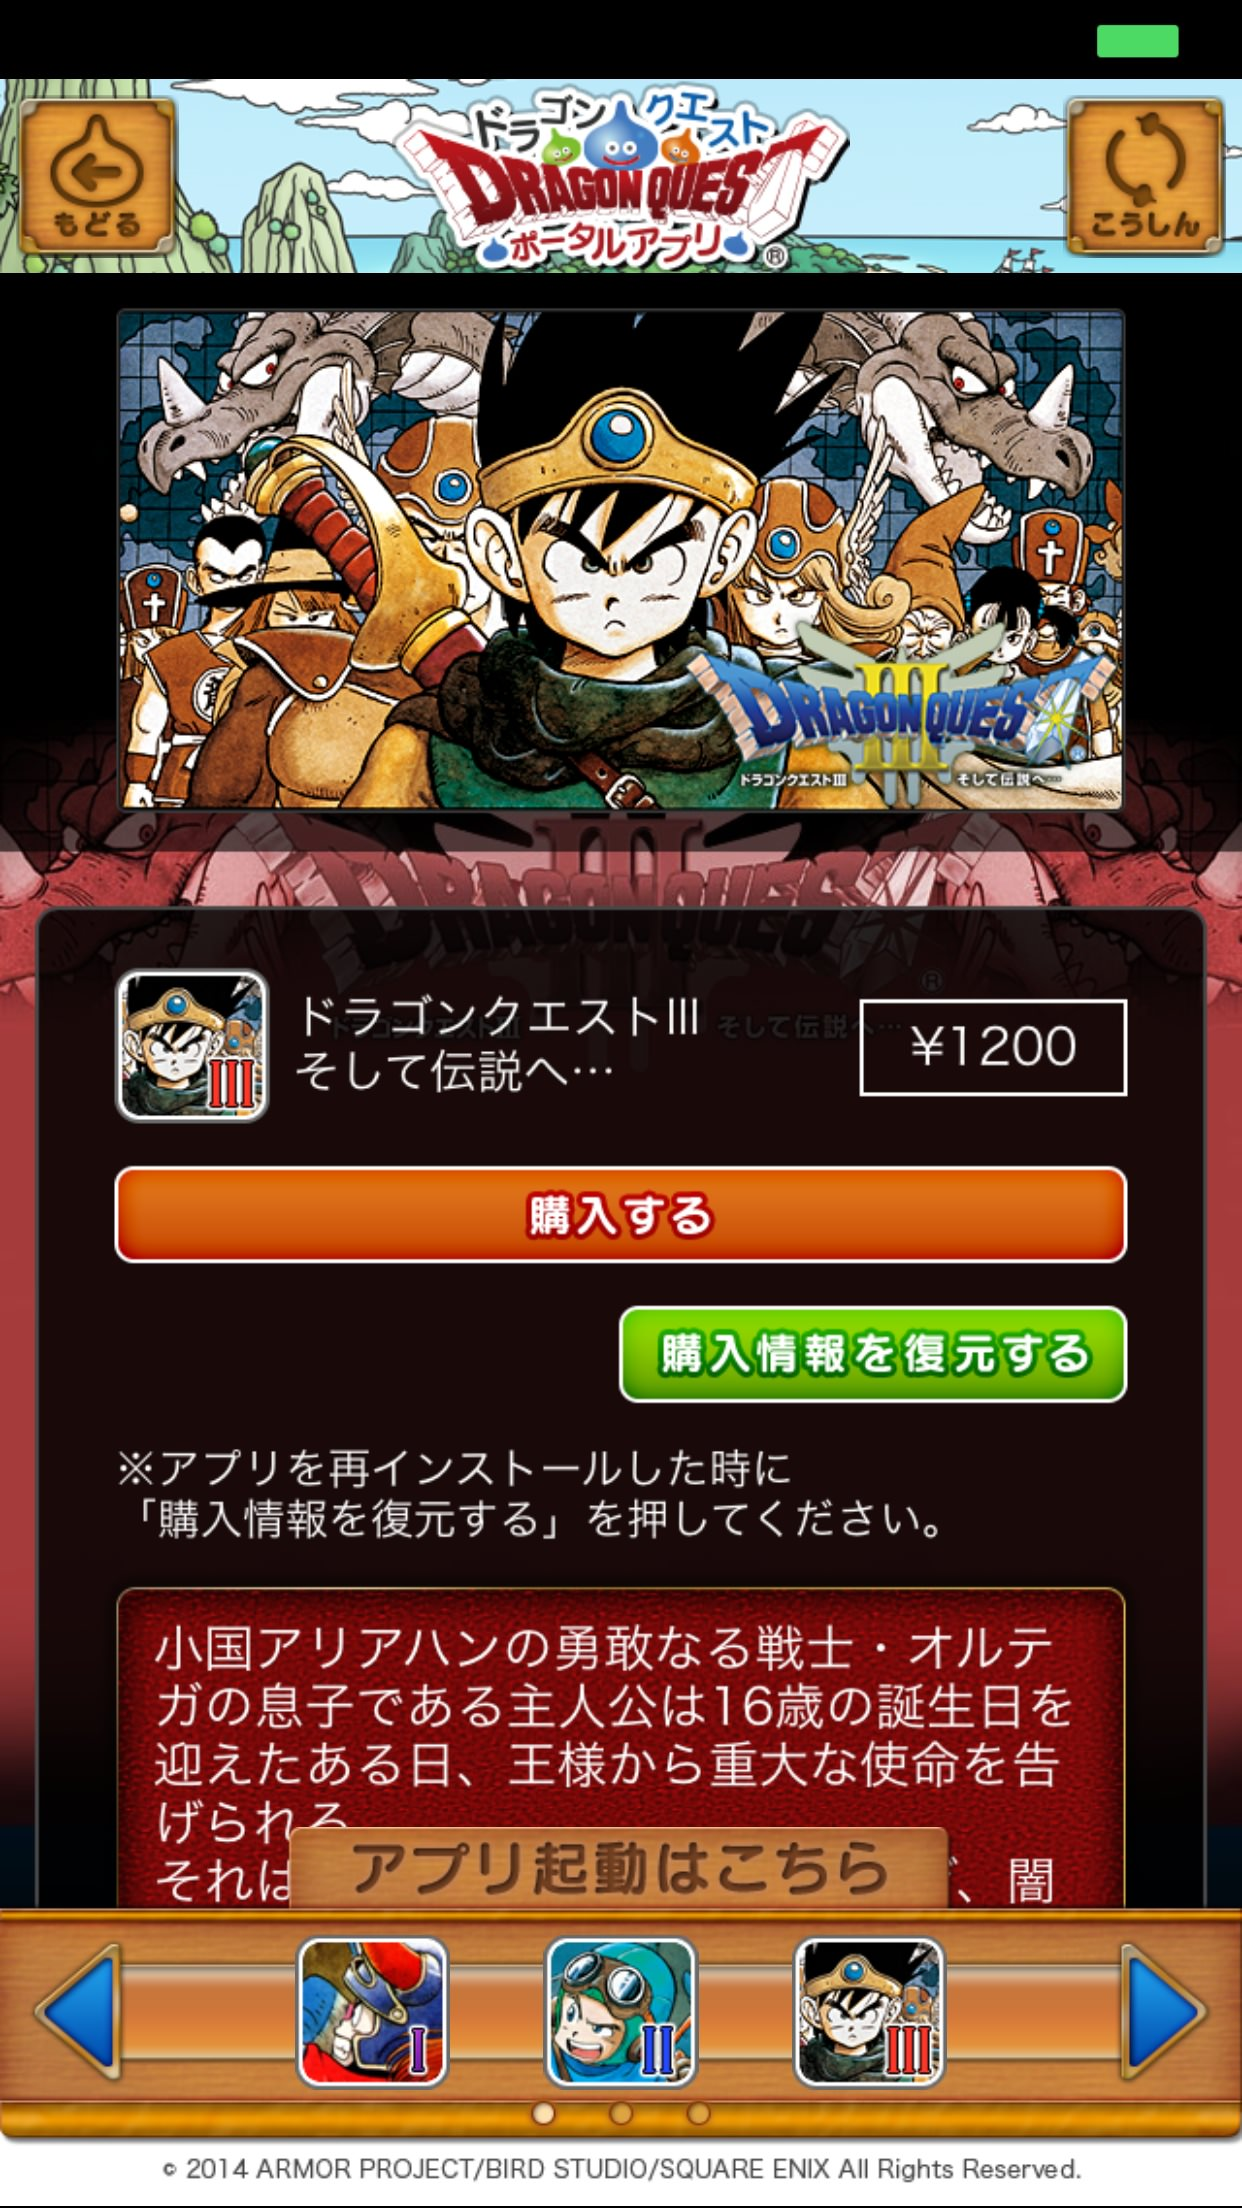 Dragon quest 3 for smartphone release 03